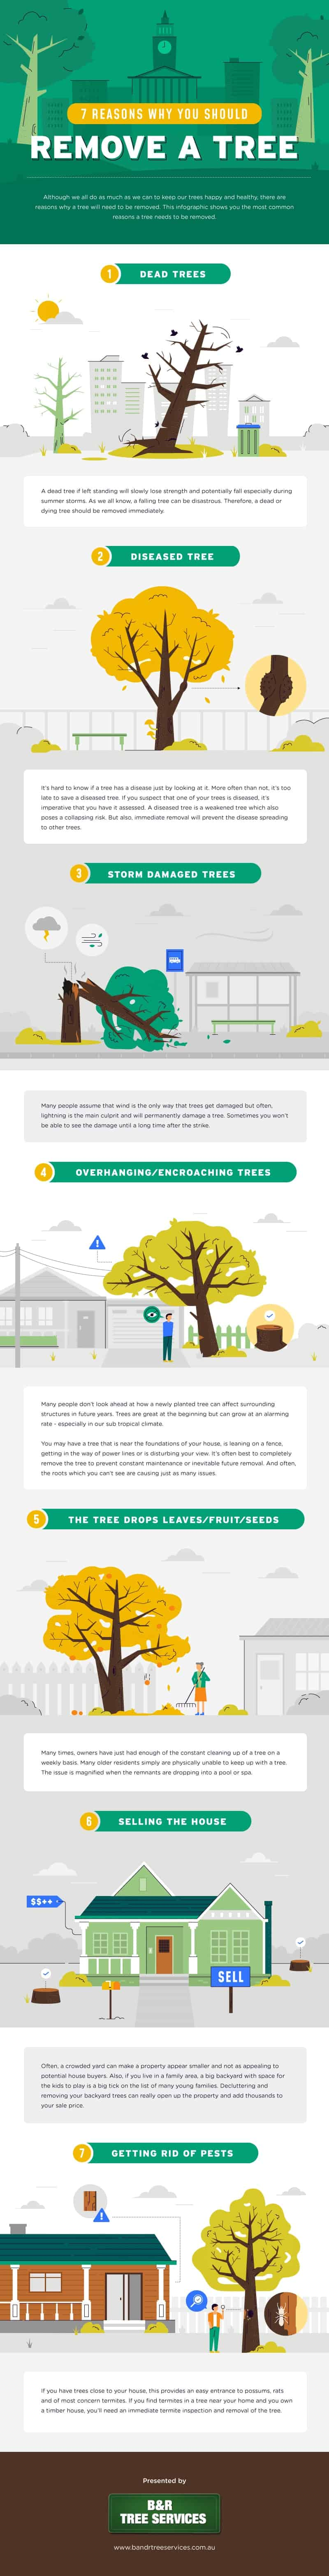 7 Reasons Why You Should Remove a Tree